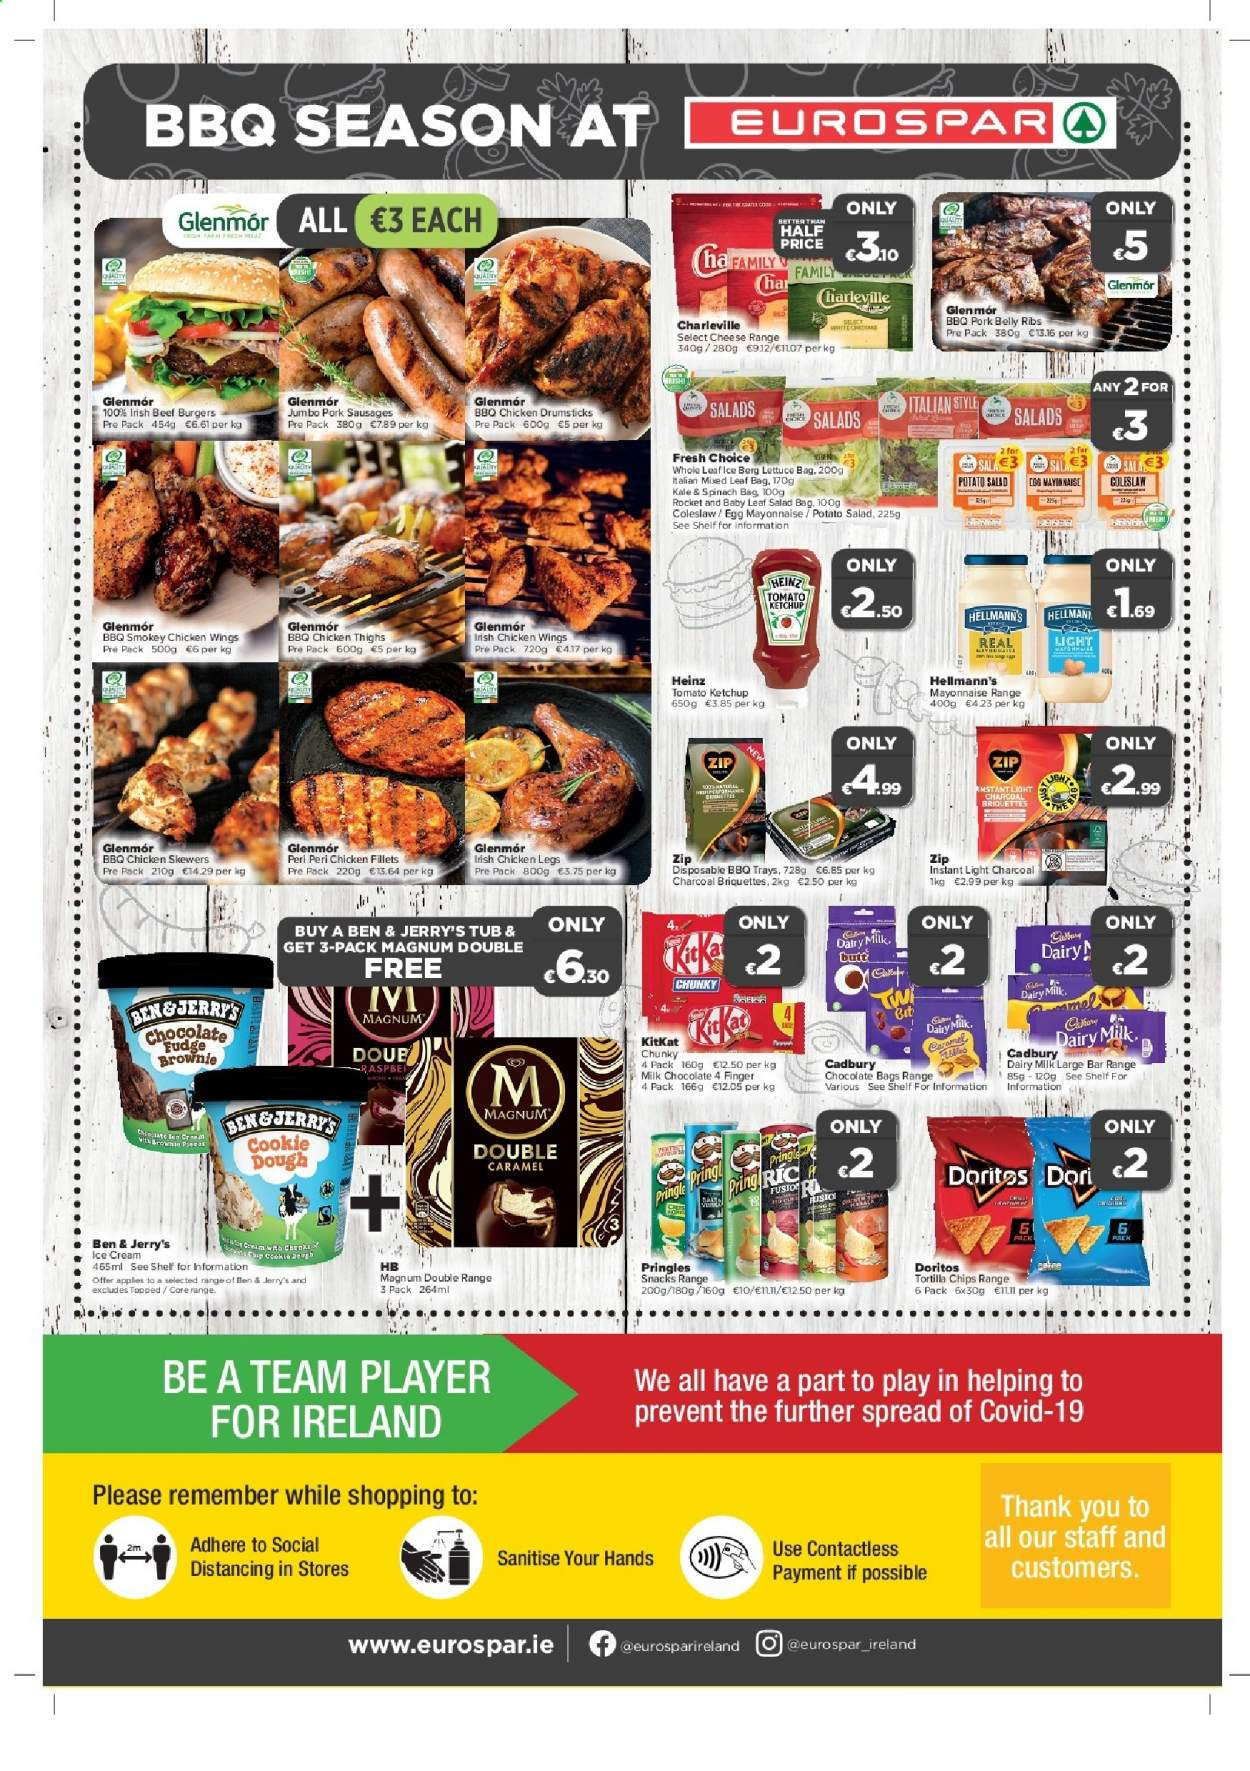 EUROSPAR offer  - 18.6.2020 - 8.7.2020 - Sales products - bag, beef meat, caramel, cookie dough, doritos, coleslaw, fudge, magnum, mayonnaise, milk chocolate, rocket, sausages, shelf, spinach, tortilla chips, heinz, ice cream, kale, ketchup, pork meat, pringles, charcoal, chicken, chicken drumsticks, chicken legs, chicken thighs, chicken wings, chips, chocolate, lettuce, cheese, player, salt, salad, briquettes, bar, ribs. Page 8.